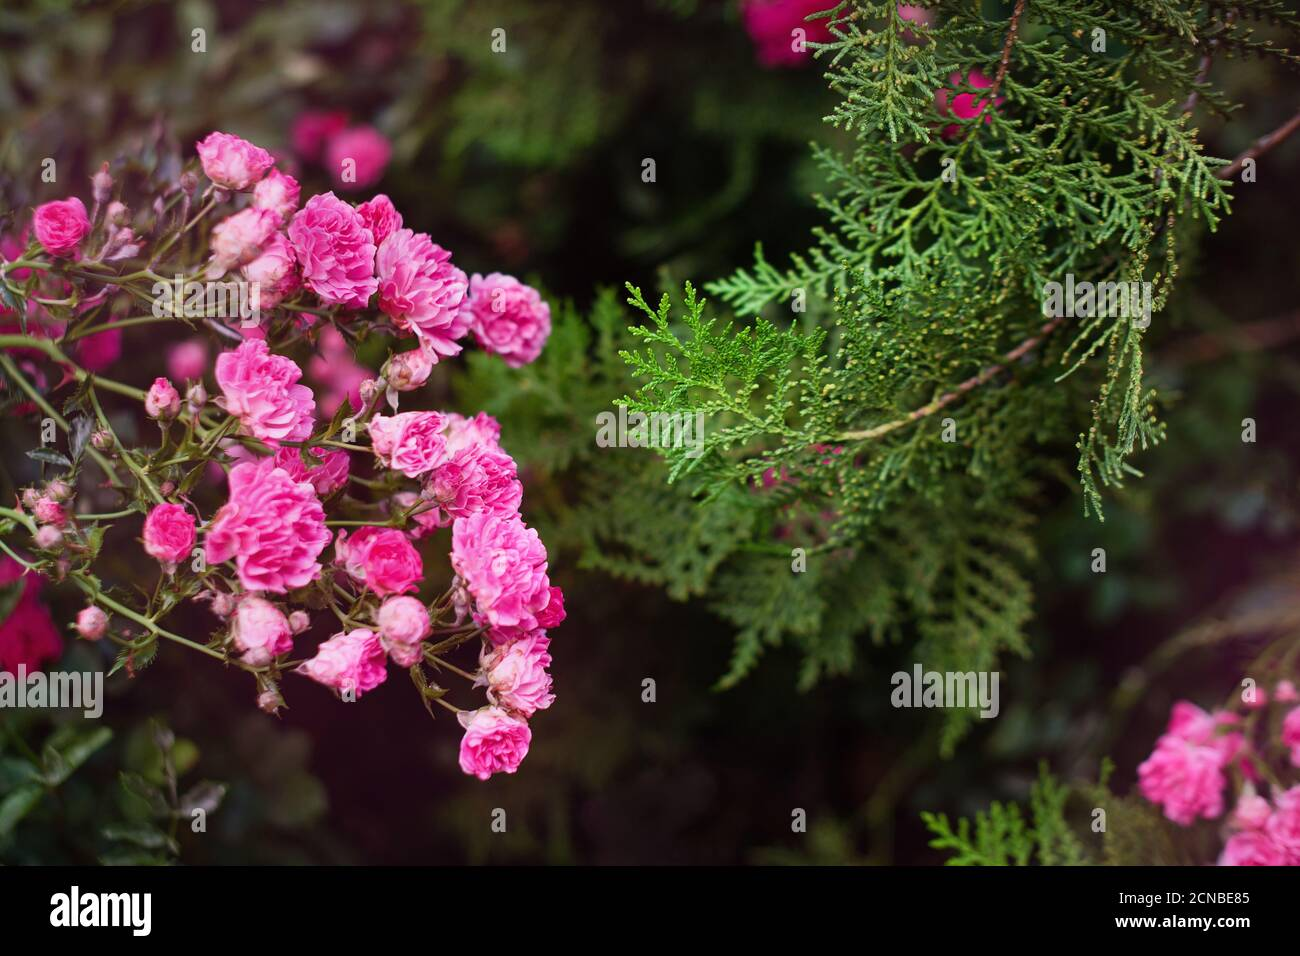 Pink roses in the garden. Blooming climbing roses on the bush. Flowers growing in the garden. Stock Photo